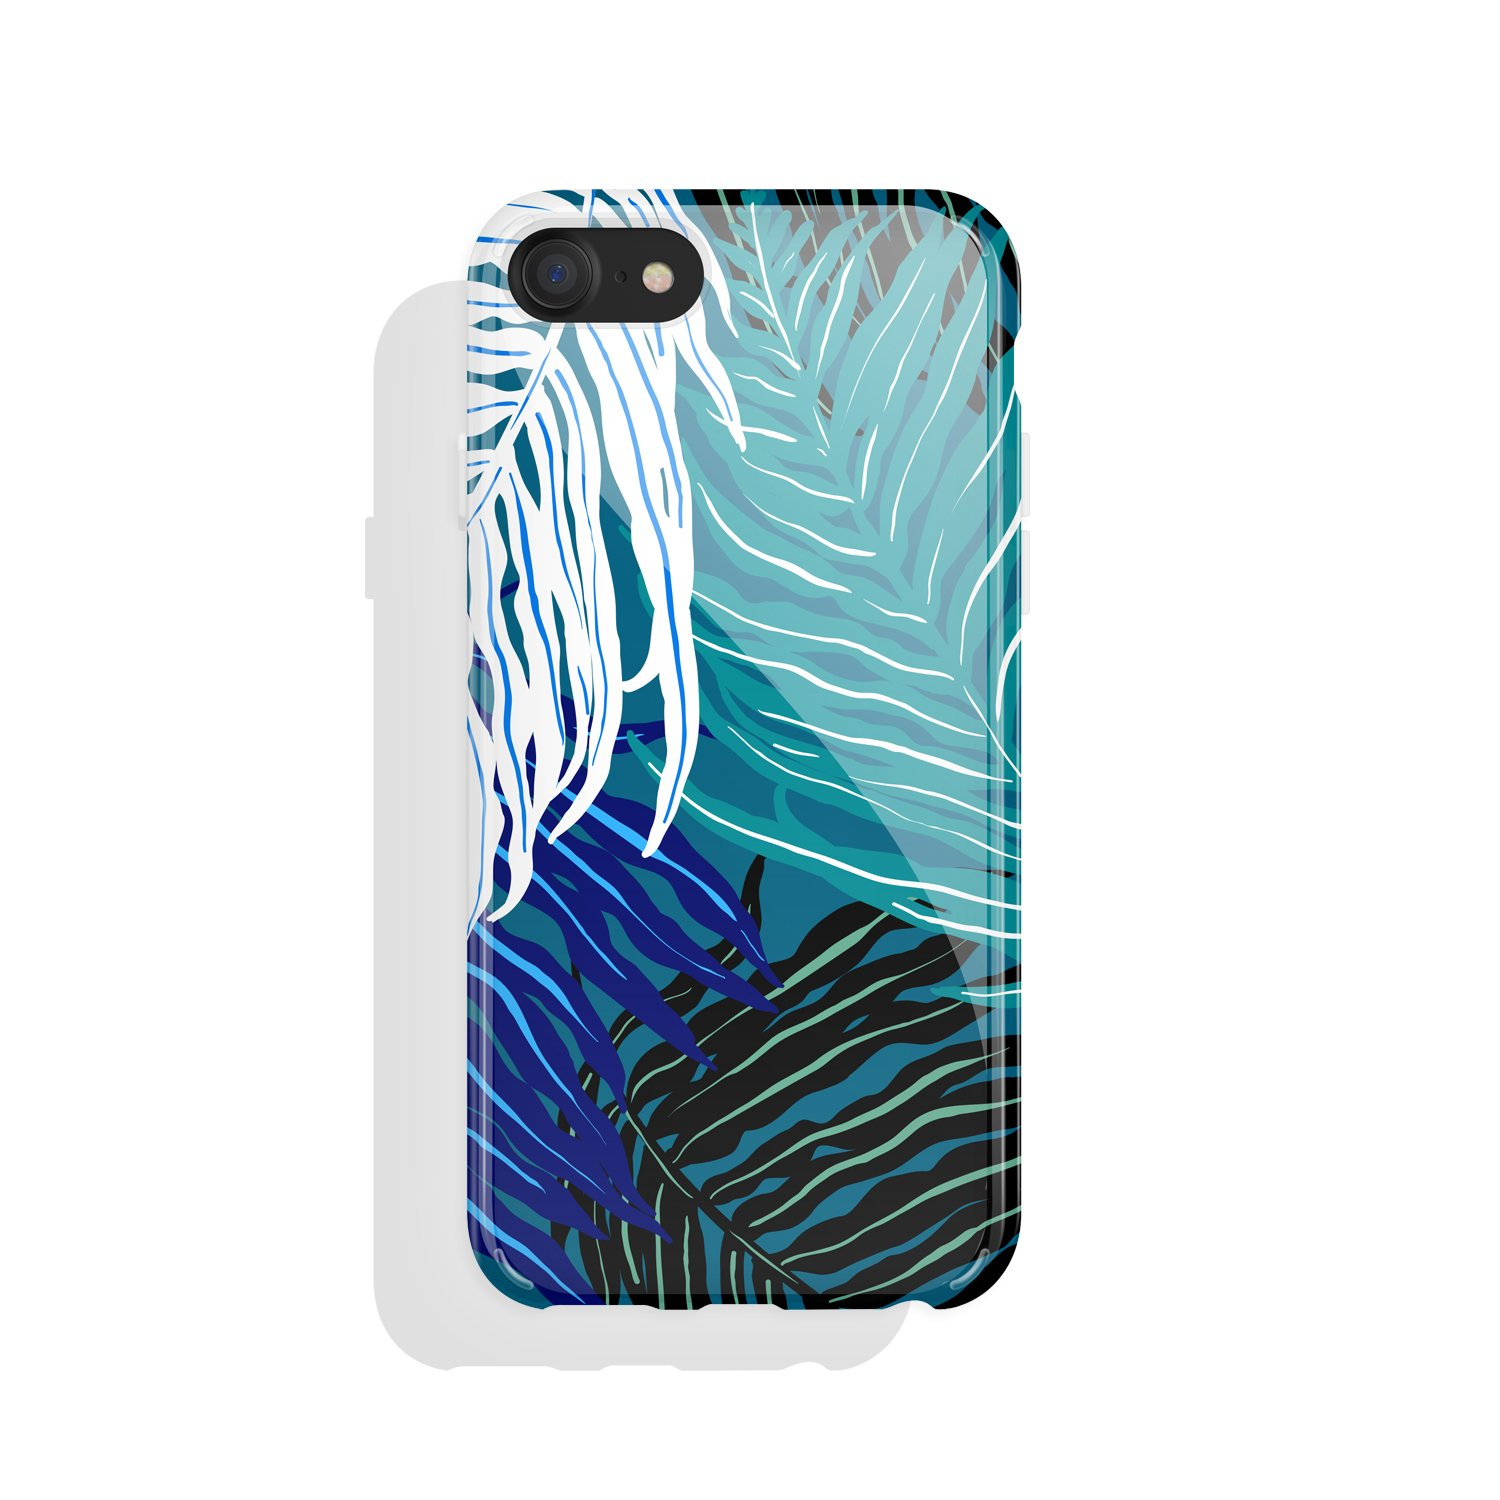 iPhone 8 & iPhone 7 Case Tropical Leaf, Akna Charming Series High Impact Silicon Cover with HD Graphics for iPhone 8 & iPhone 7 (101284-U.S)